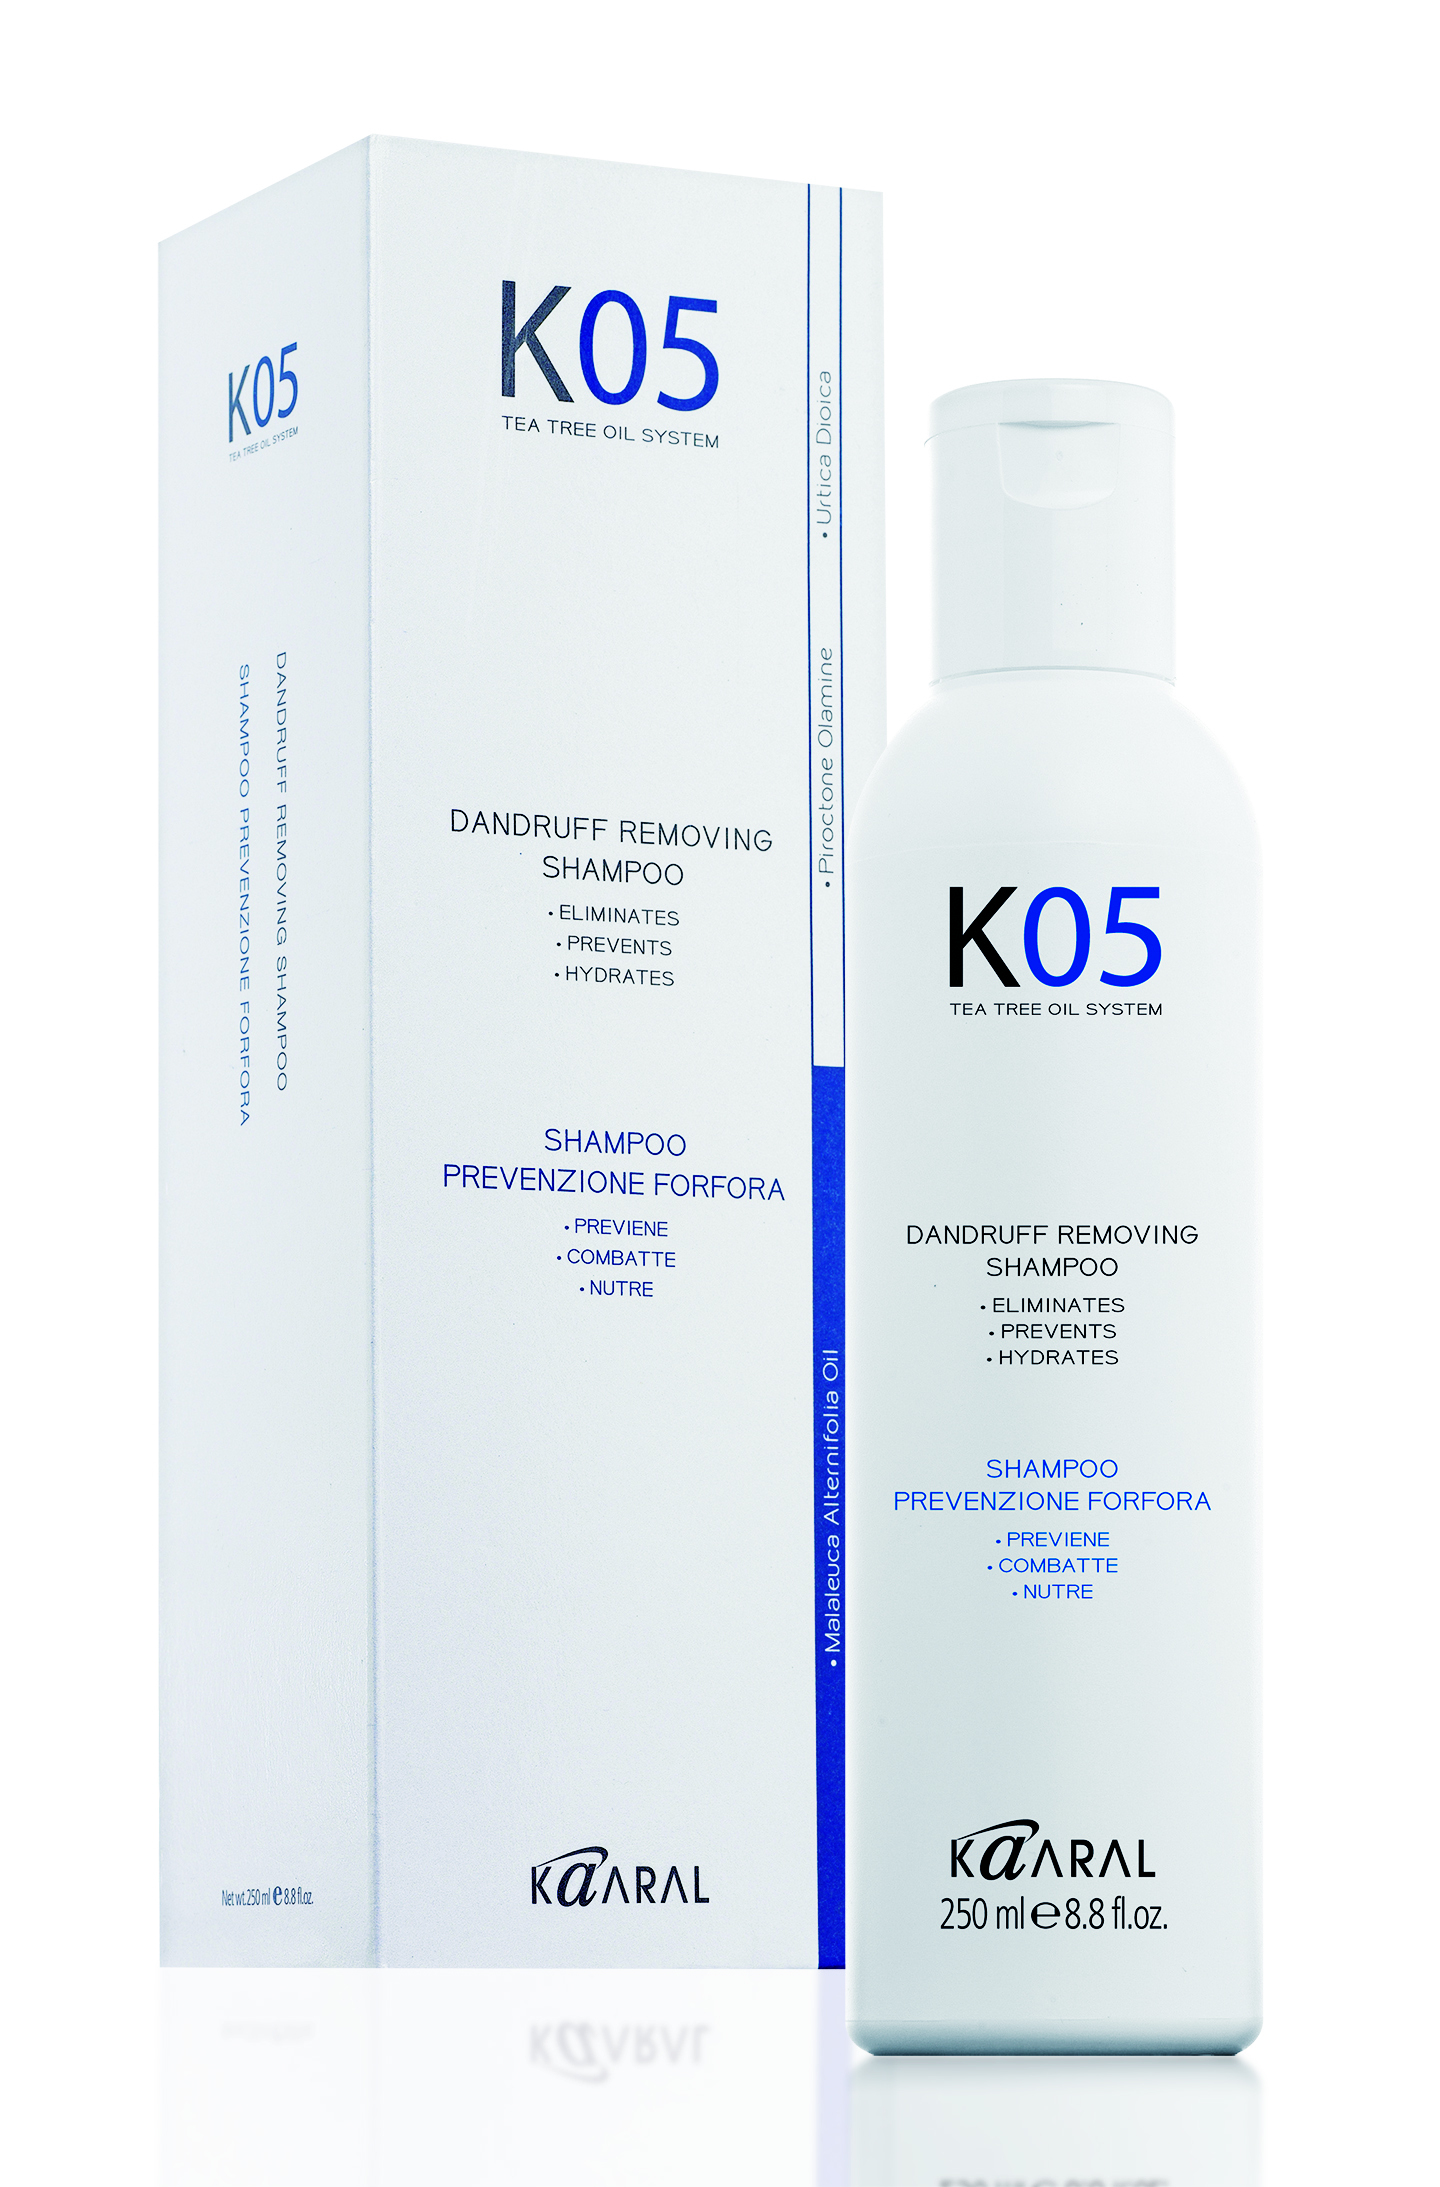 Kaaral K05 Hair Care Dandruff Removing Shampoo Шампунь против перхоти (250 ml) 1053